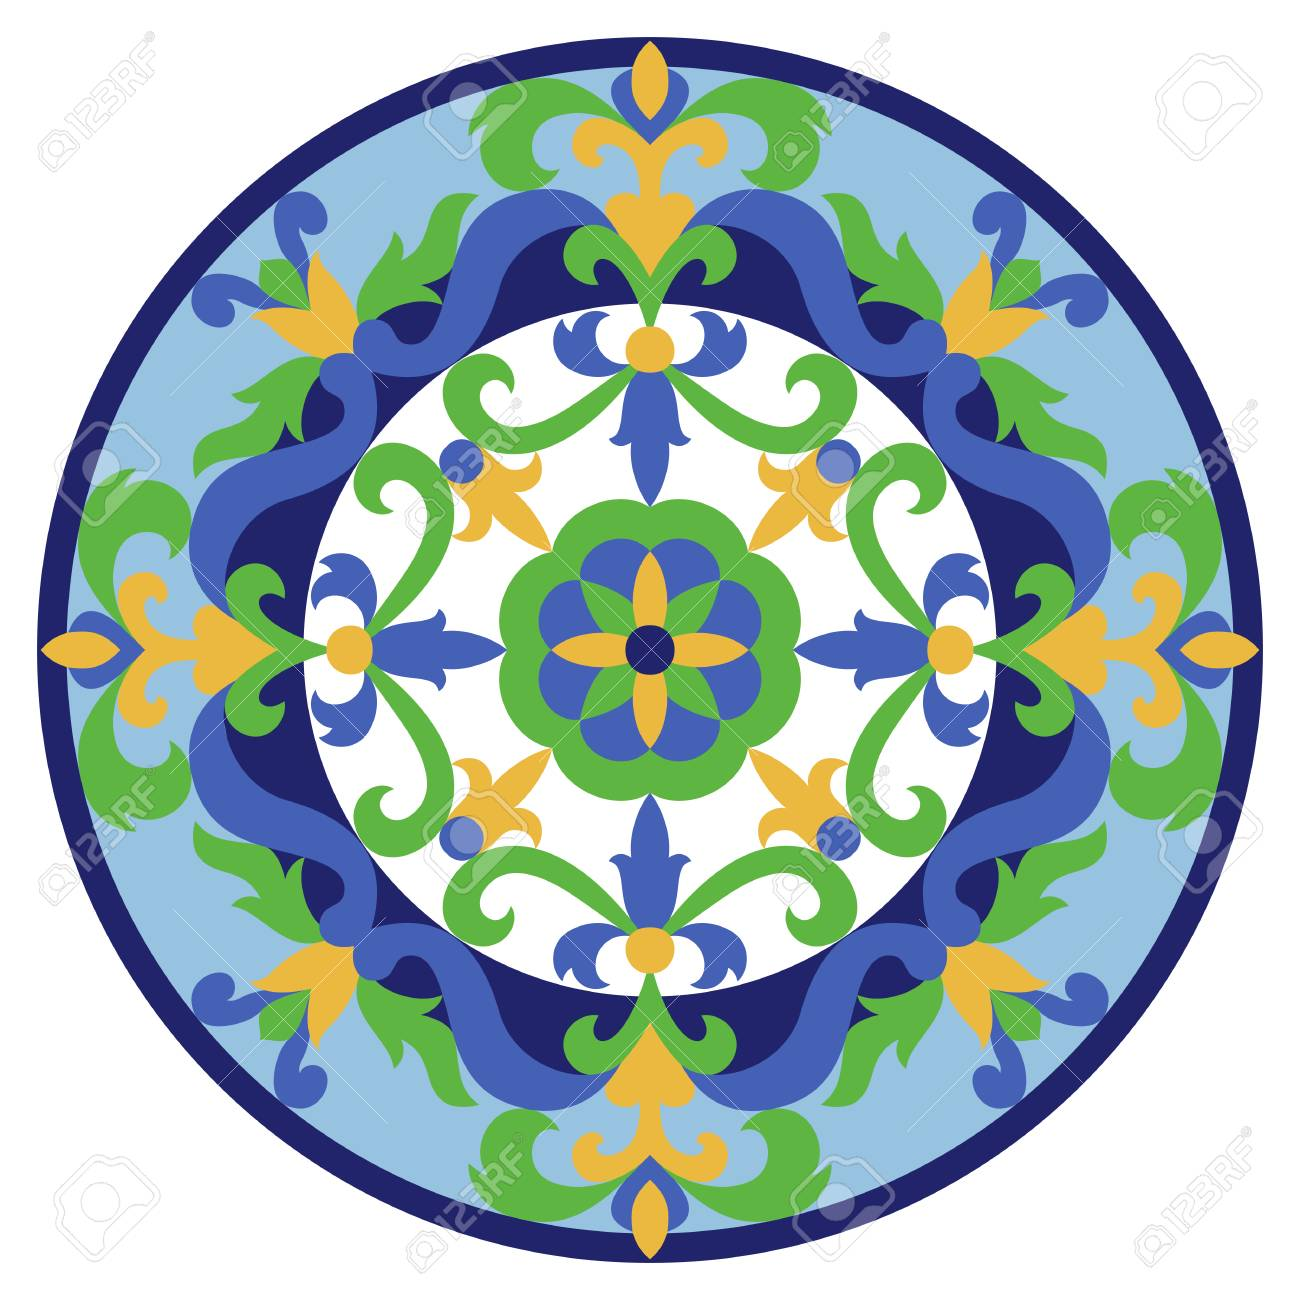 Vector mosaic classic medallion. Abstract floral round majolica composition for interior decoration, ceramic tile, textile prints. - 126871140